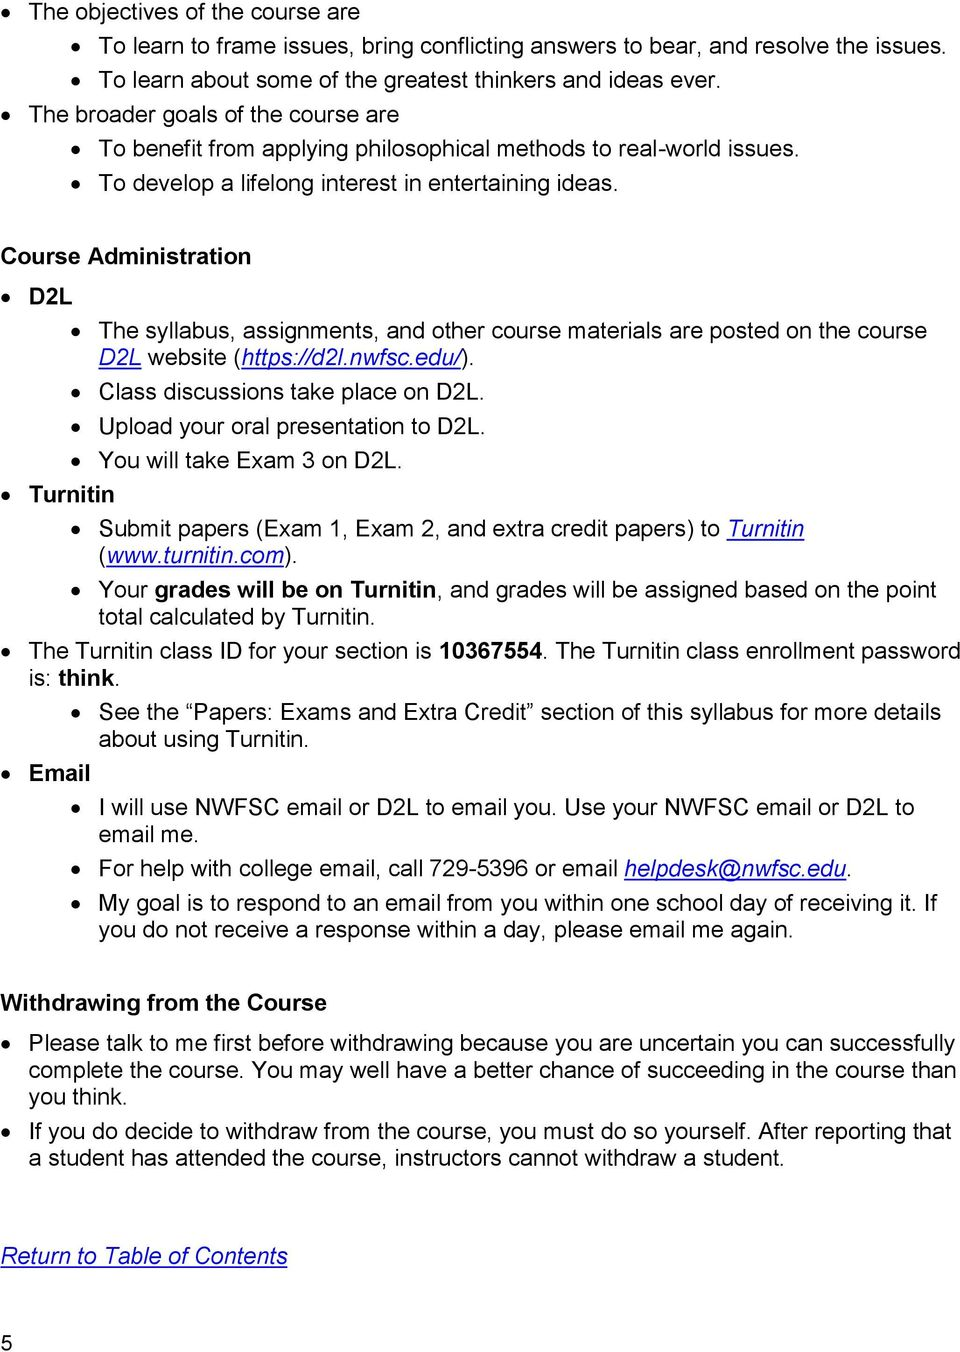 Course Administration D2L Turnitin The syllabus, assignments, and other course materials are posted on the course D2L website (https://d2l.nwfsc.edu/). Class discussions take place on D2L.